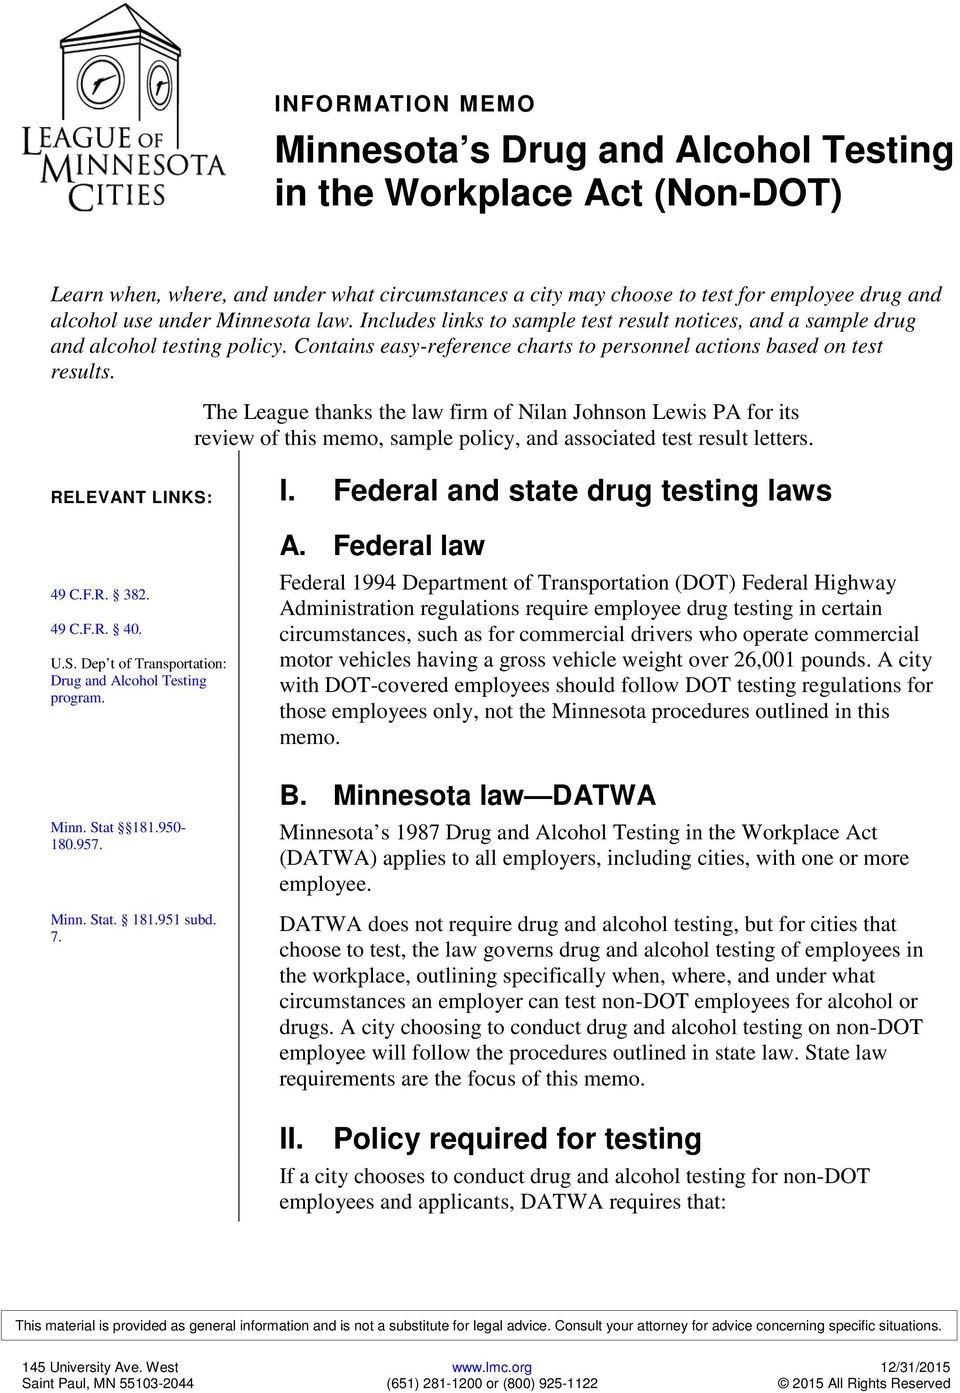 The League thanks the law firm of Nilan Johnson Lewis PA for its review of this memo, sample policy, and associated test result letters. RELEVANT LINKS: I. Federal and state drug testing laws 49 C.F.R. 382.